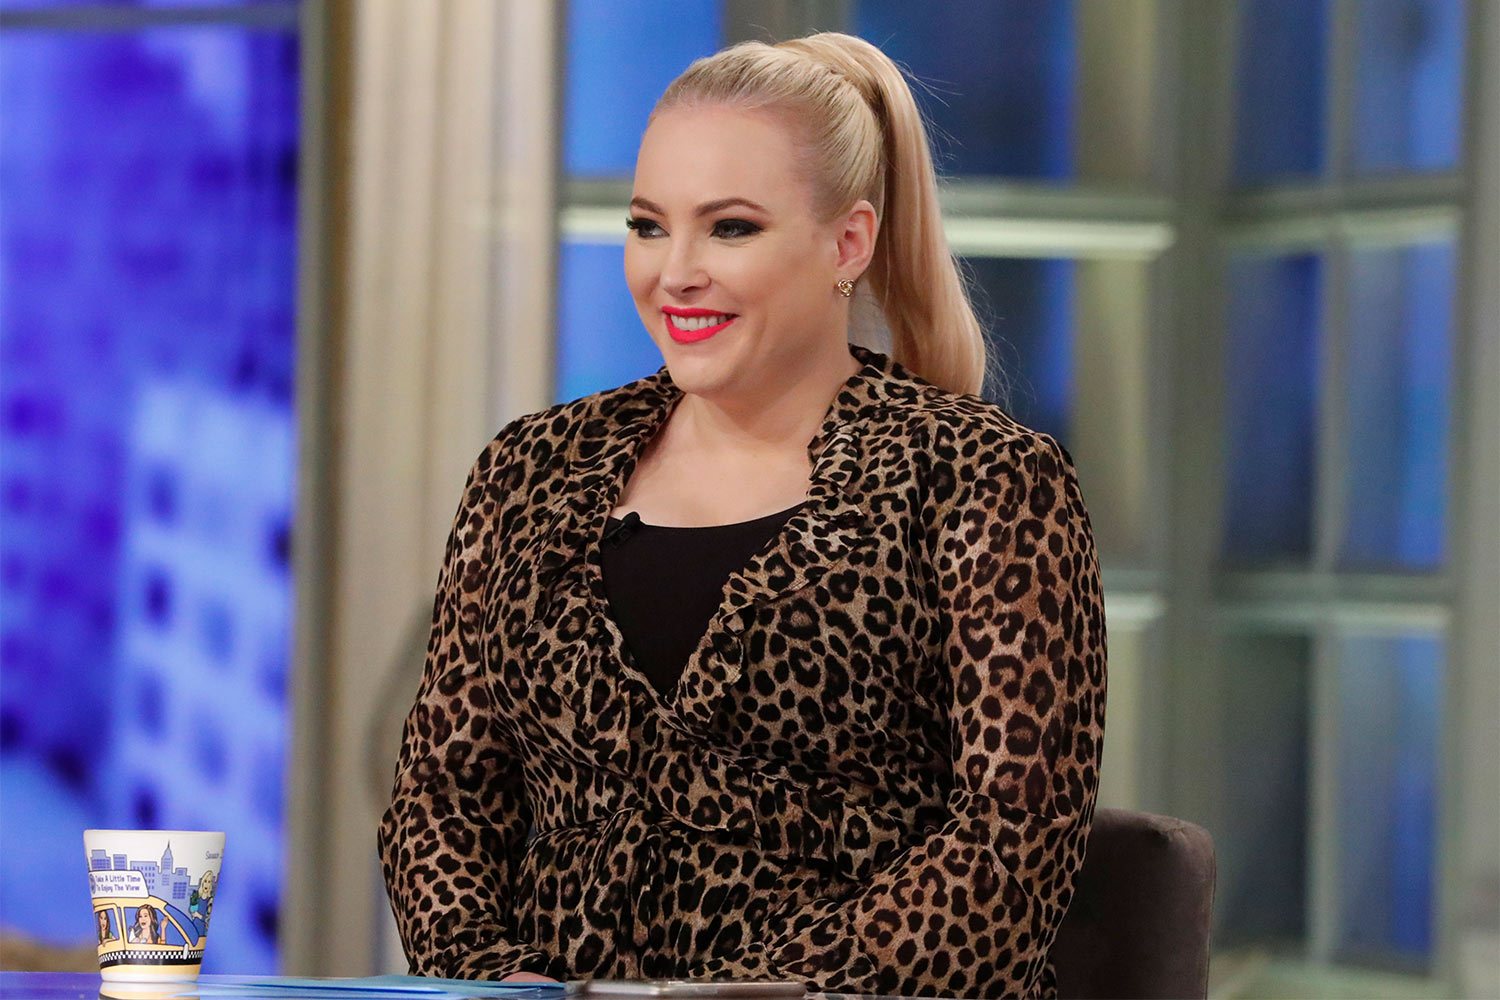 meghan-mccain-wants-marjorie-taylor-green-removed-from-congress-for-making-republicans-look-bad